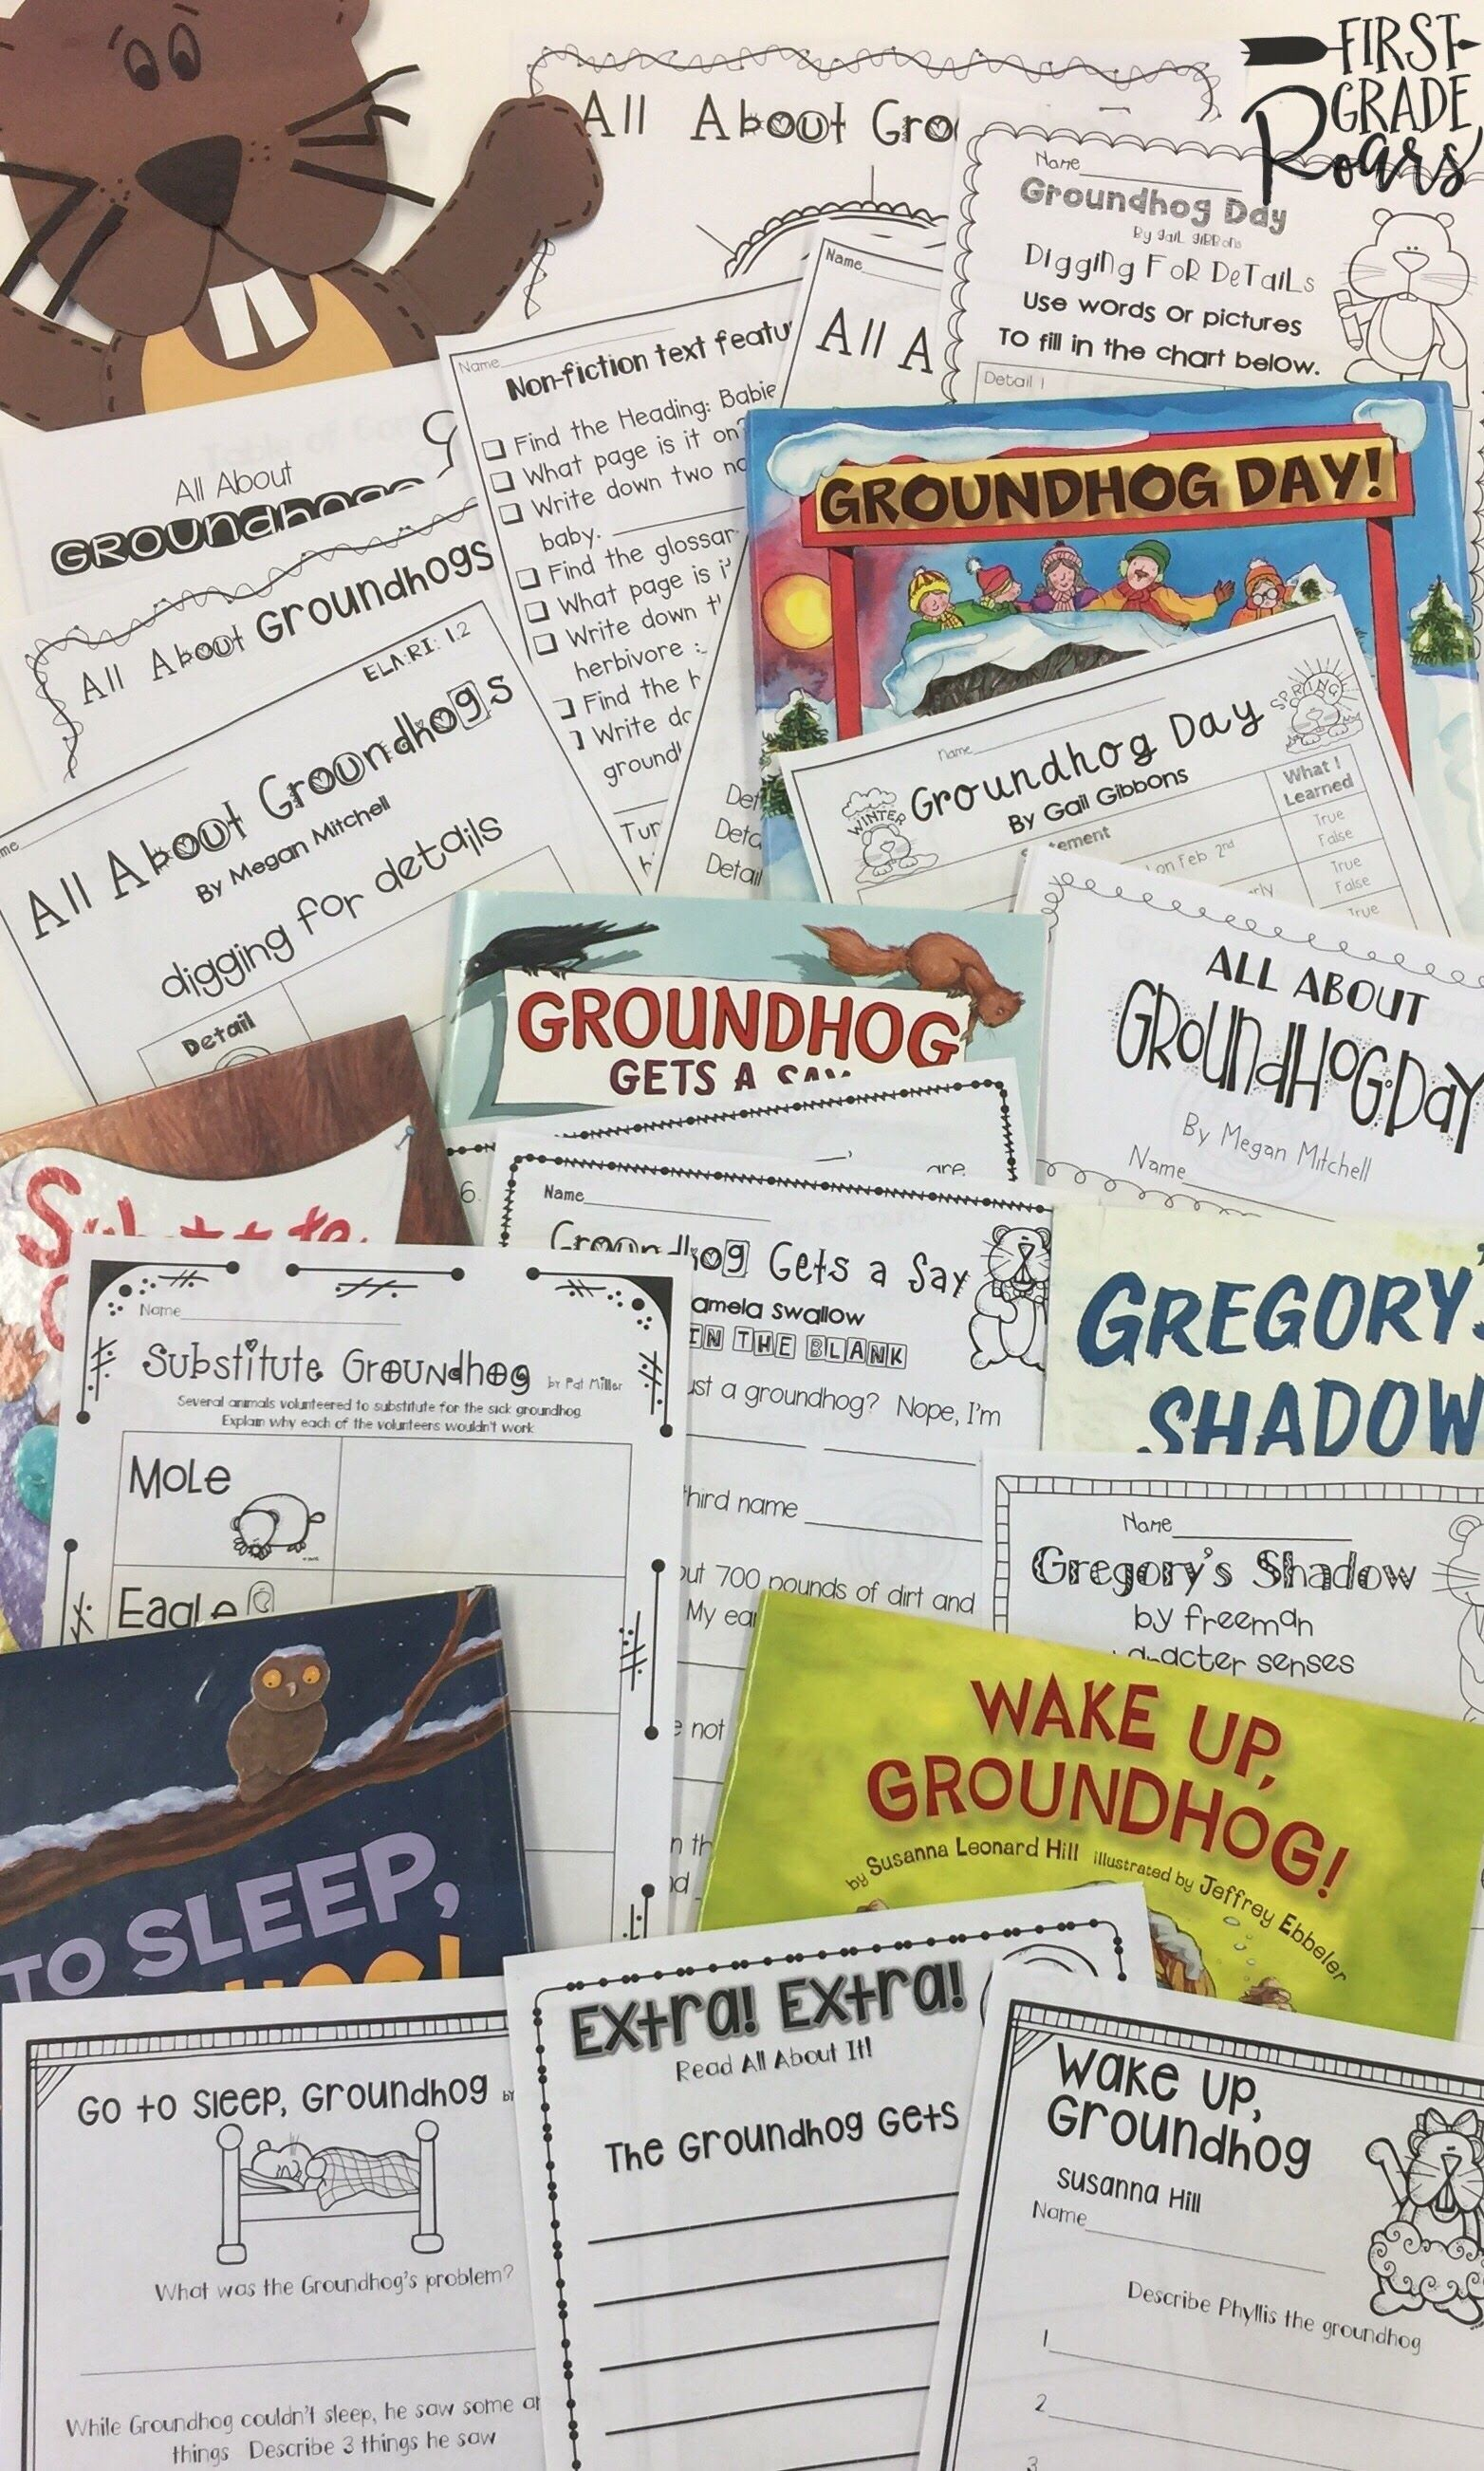 Learn About Groundhogs And Groundhog Day With This Fun